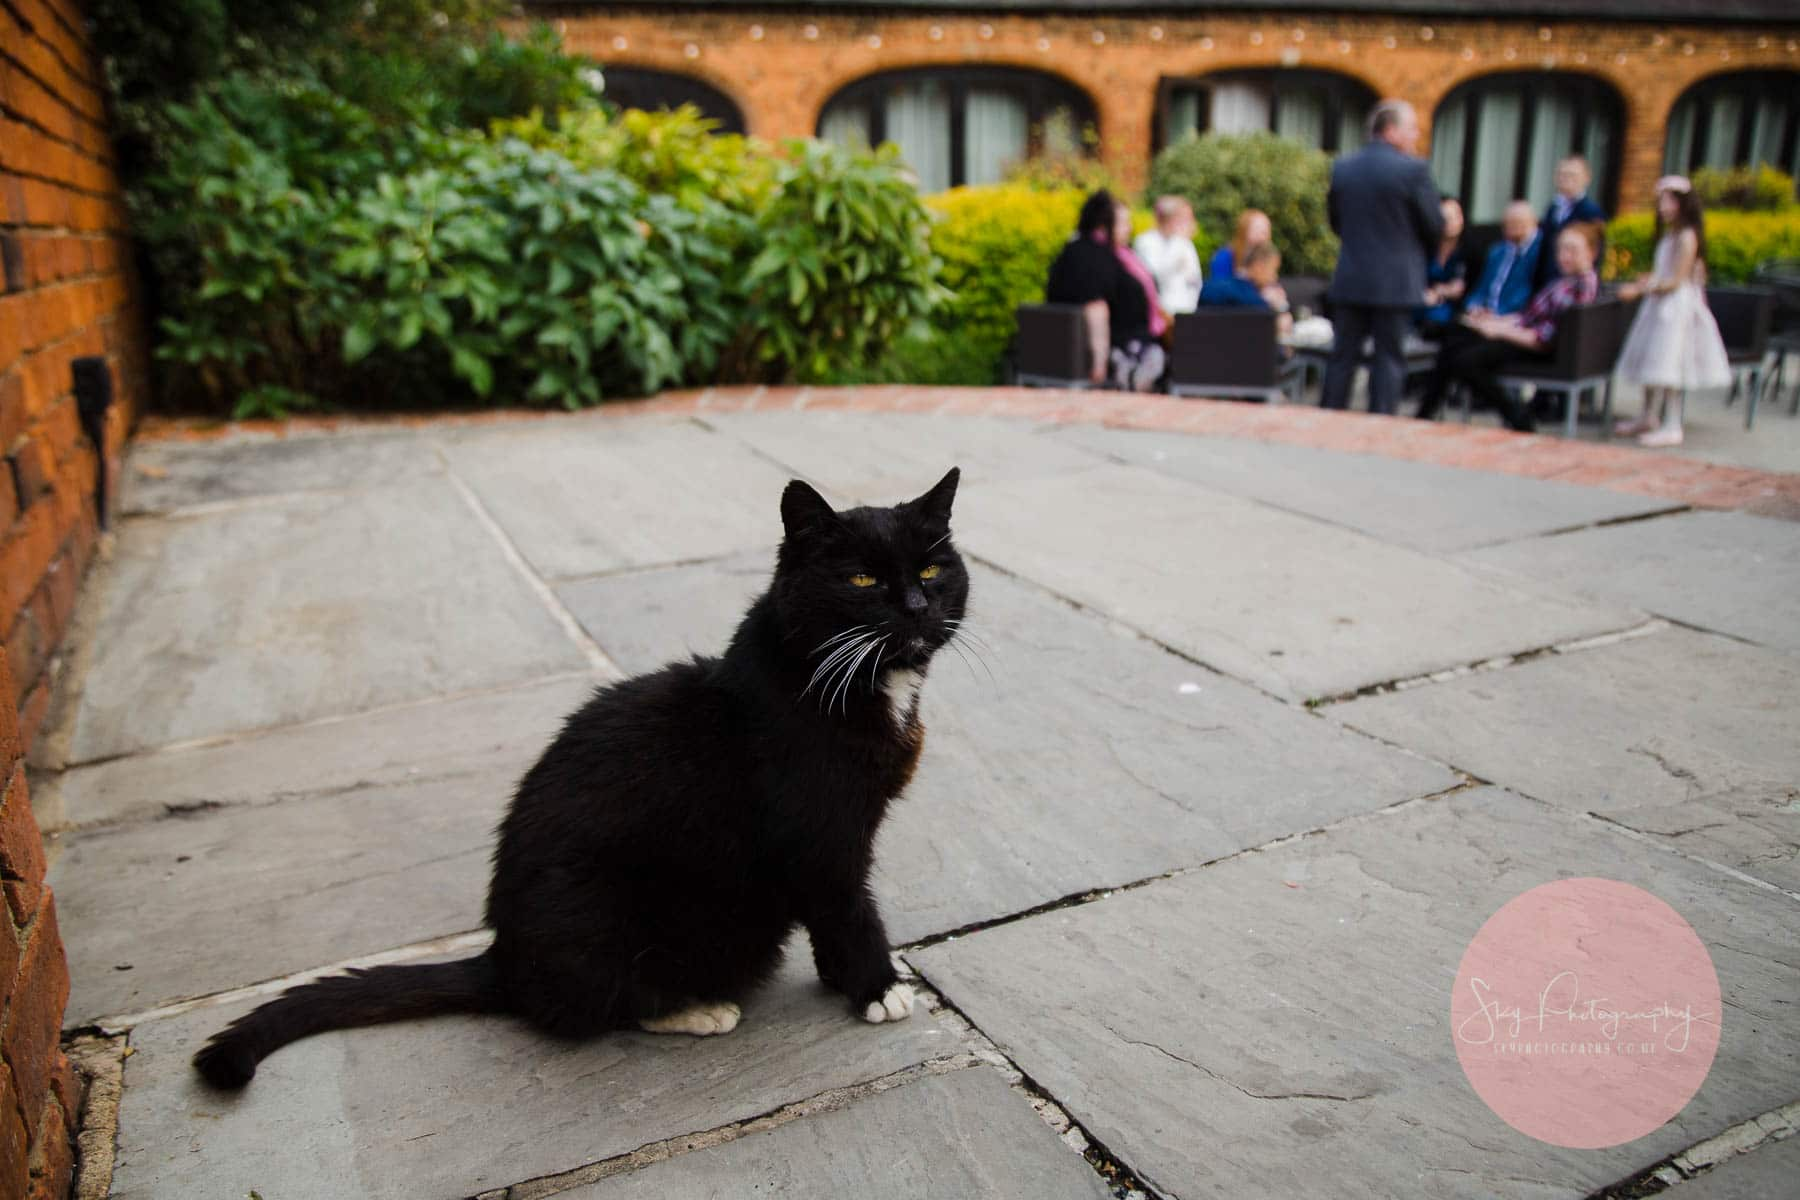 Dodmoor cat watching the wedding